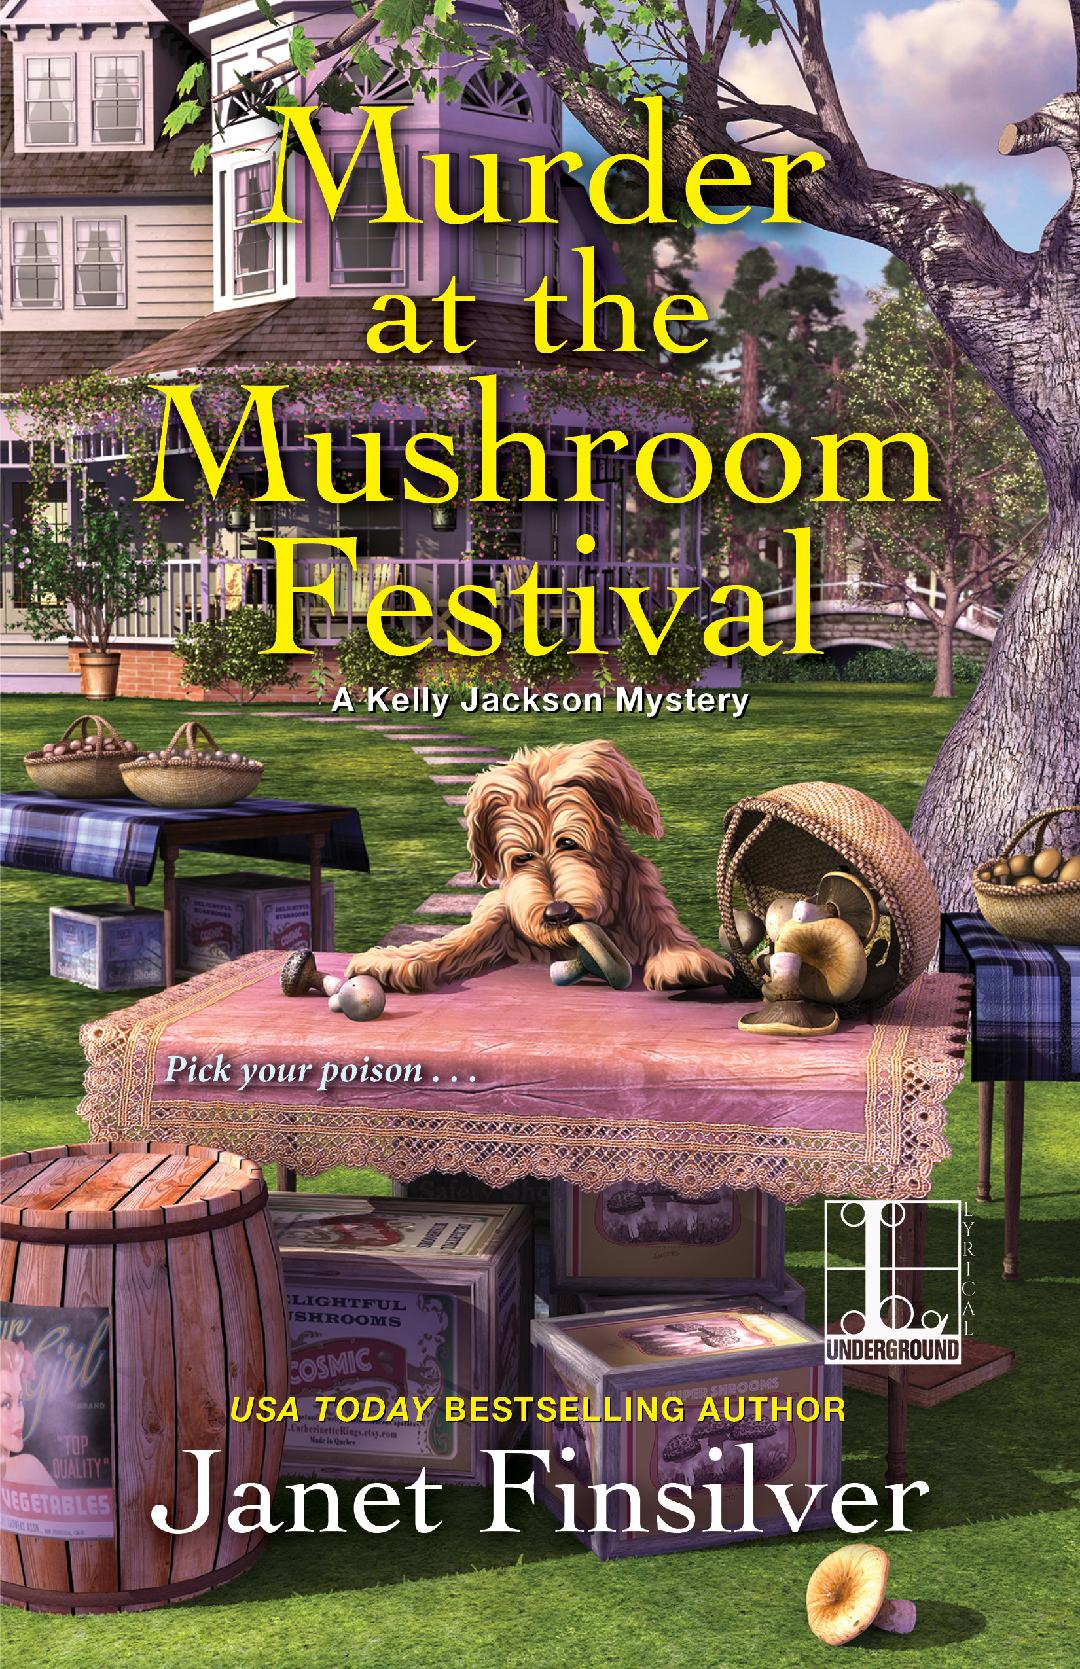 Cozy murder mystery, MURDER AT THE MUSHROOM FESTIVAL, features a goldendoodle mushroom-hunting dog that is also a diabetic alert dog.